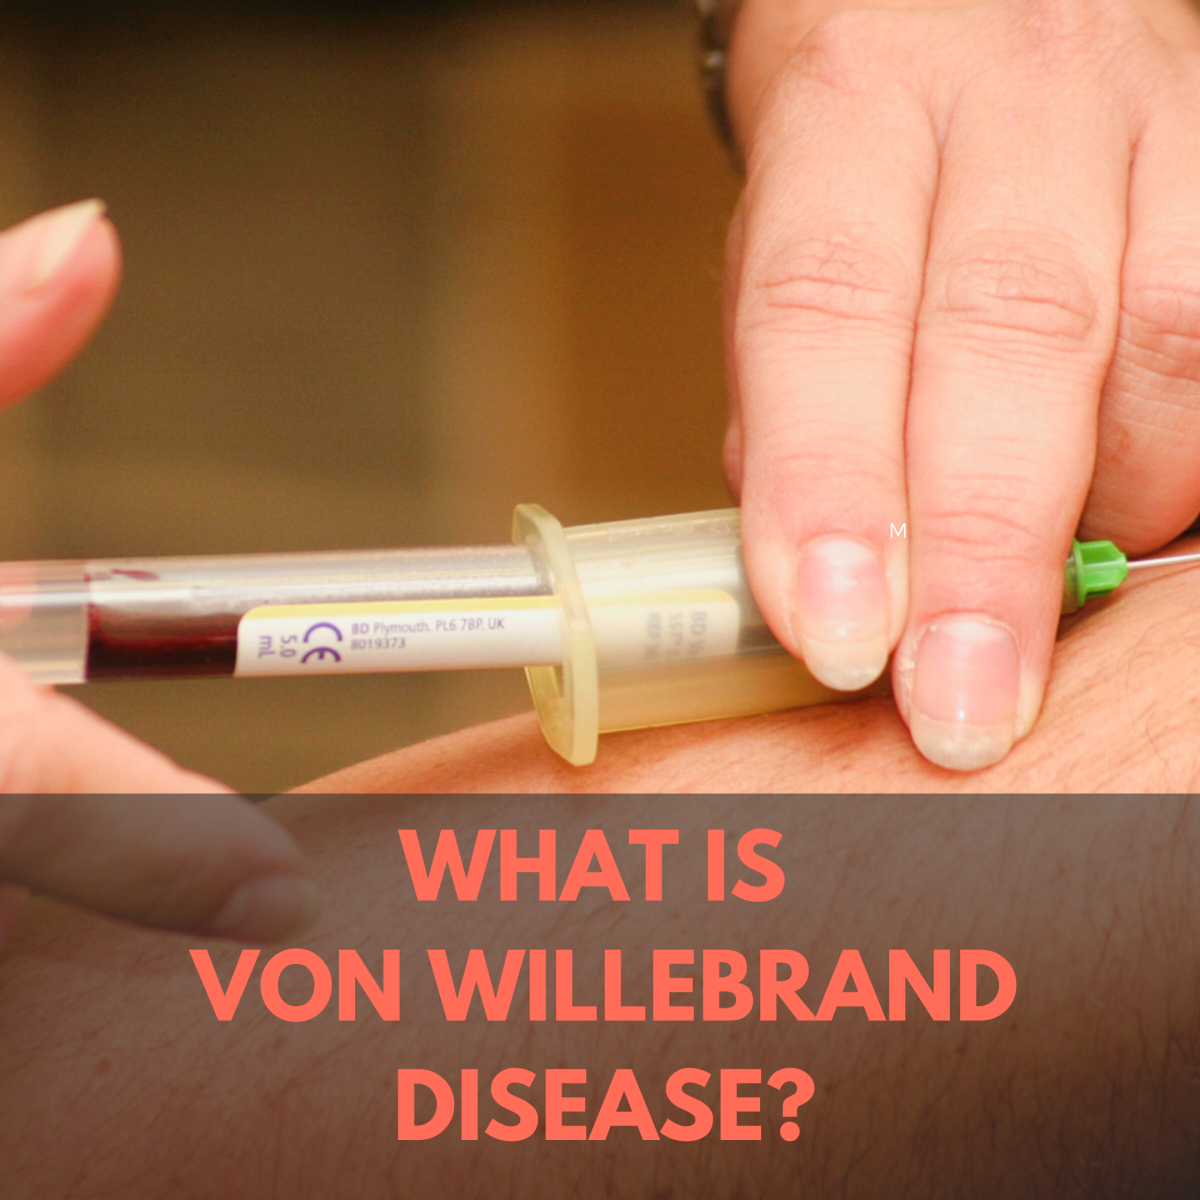 Von Willebrand Disease (VWD) is an inherited or acquired blood disorder that results in frequent and excessive bleeding.